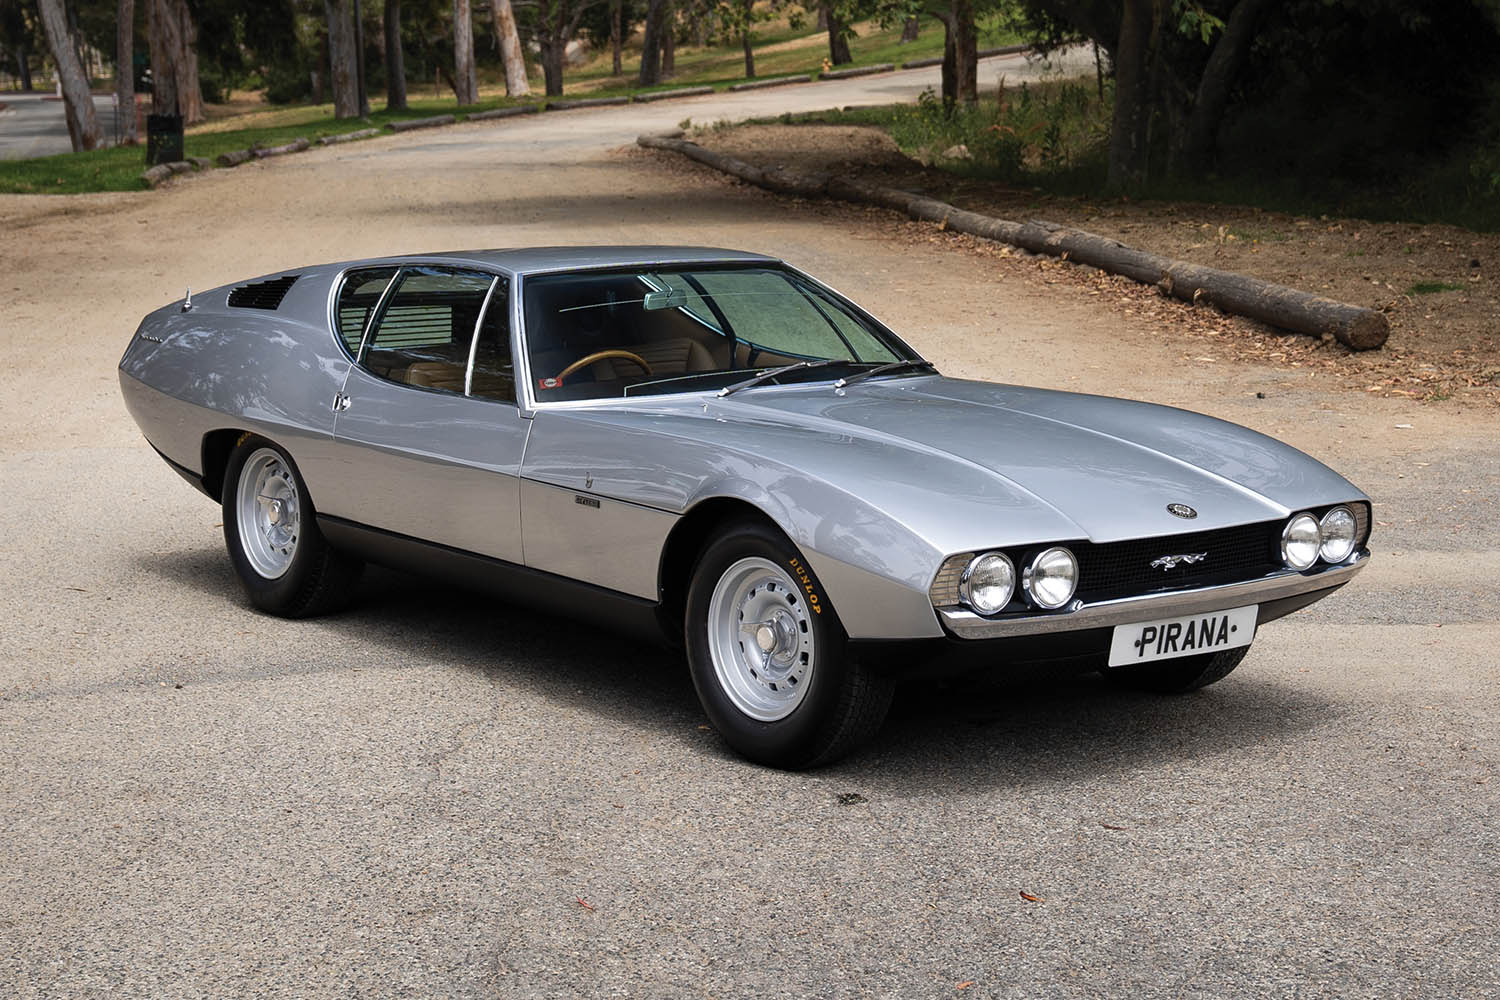 1967-Jaguar-Pirana-by-Bertone_0.jpg